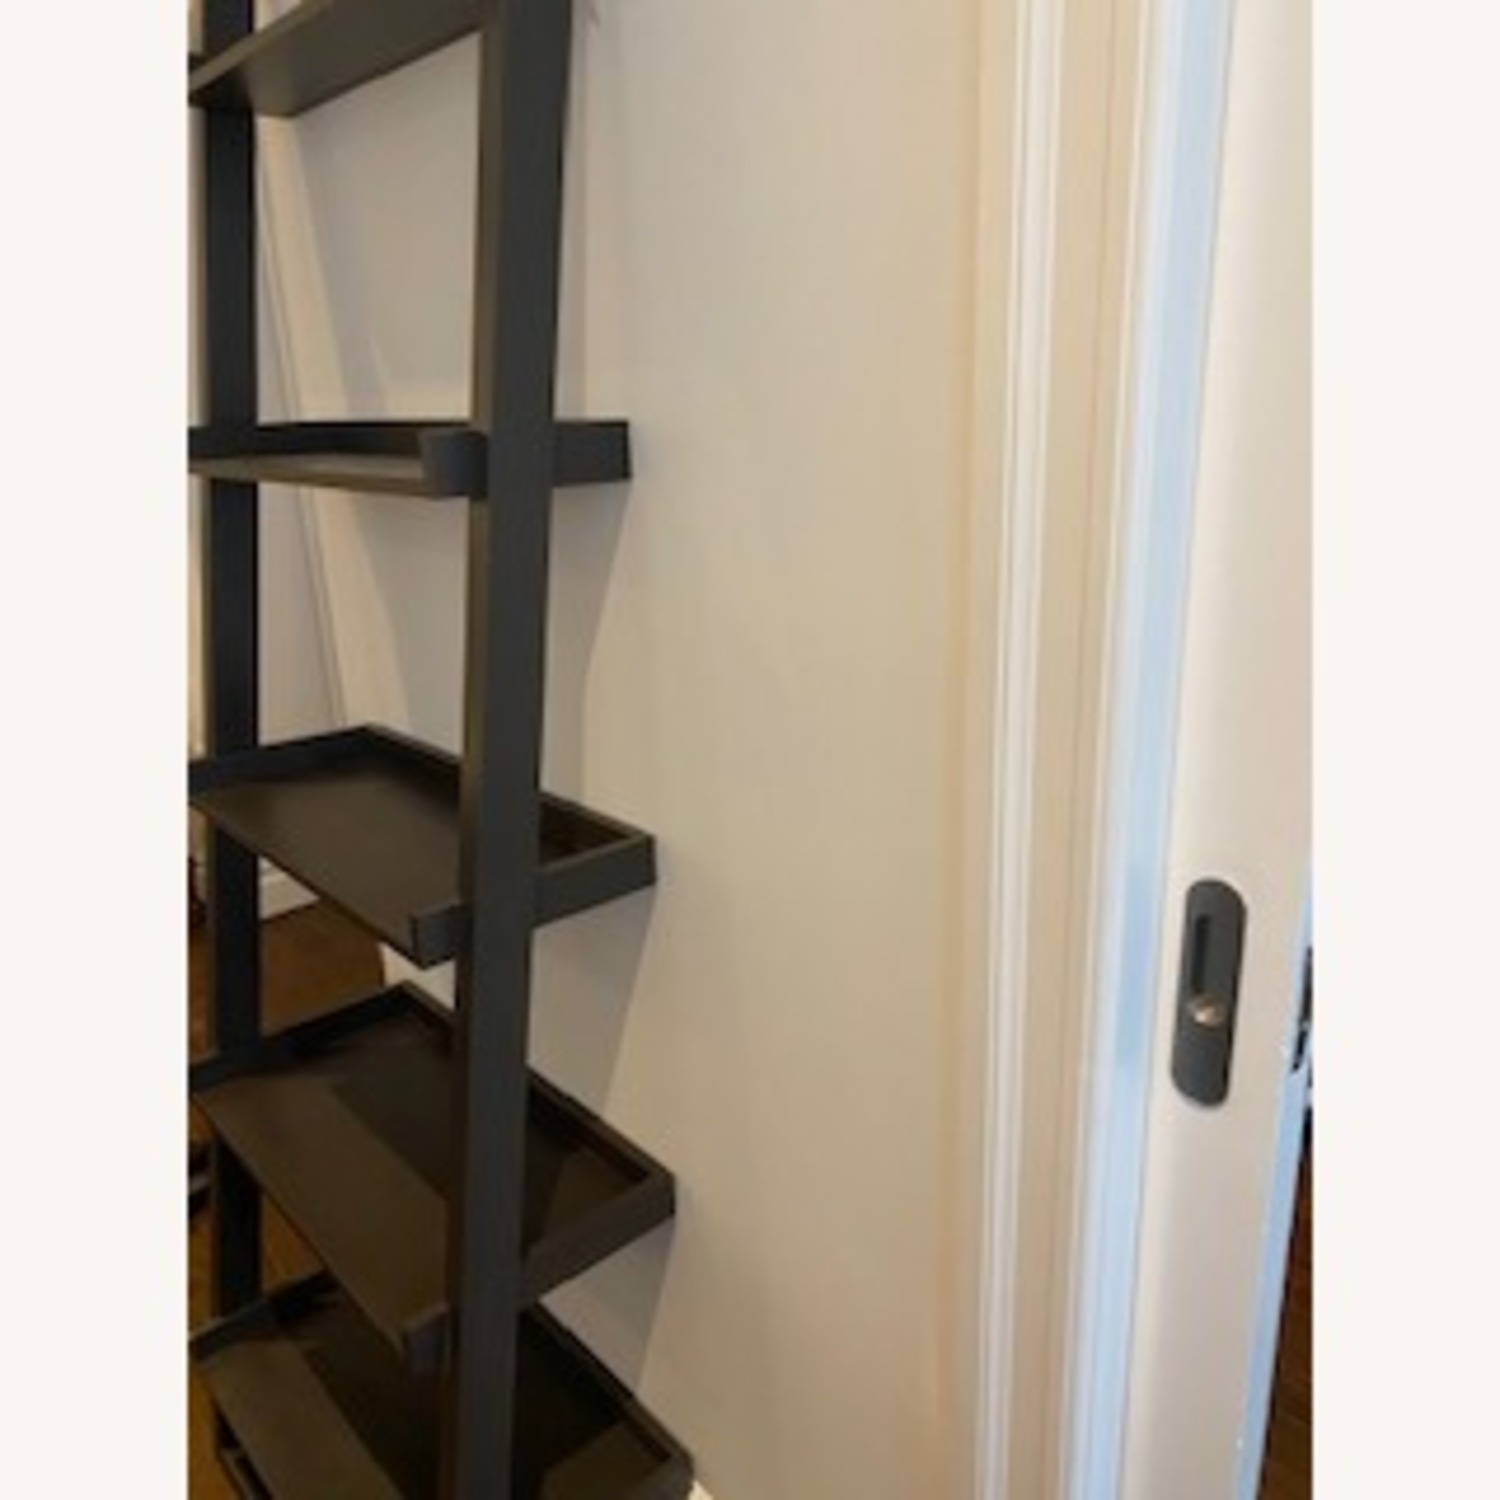 Crate and Barrel Sloane Leaning Bookcase - image-2